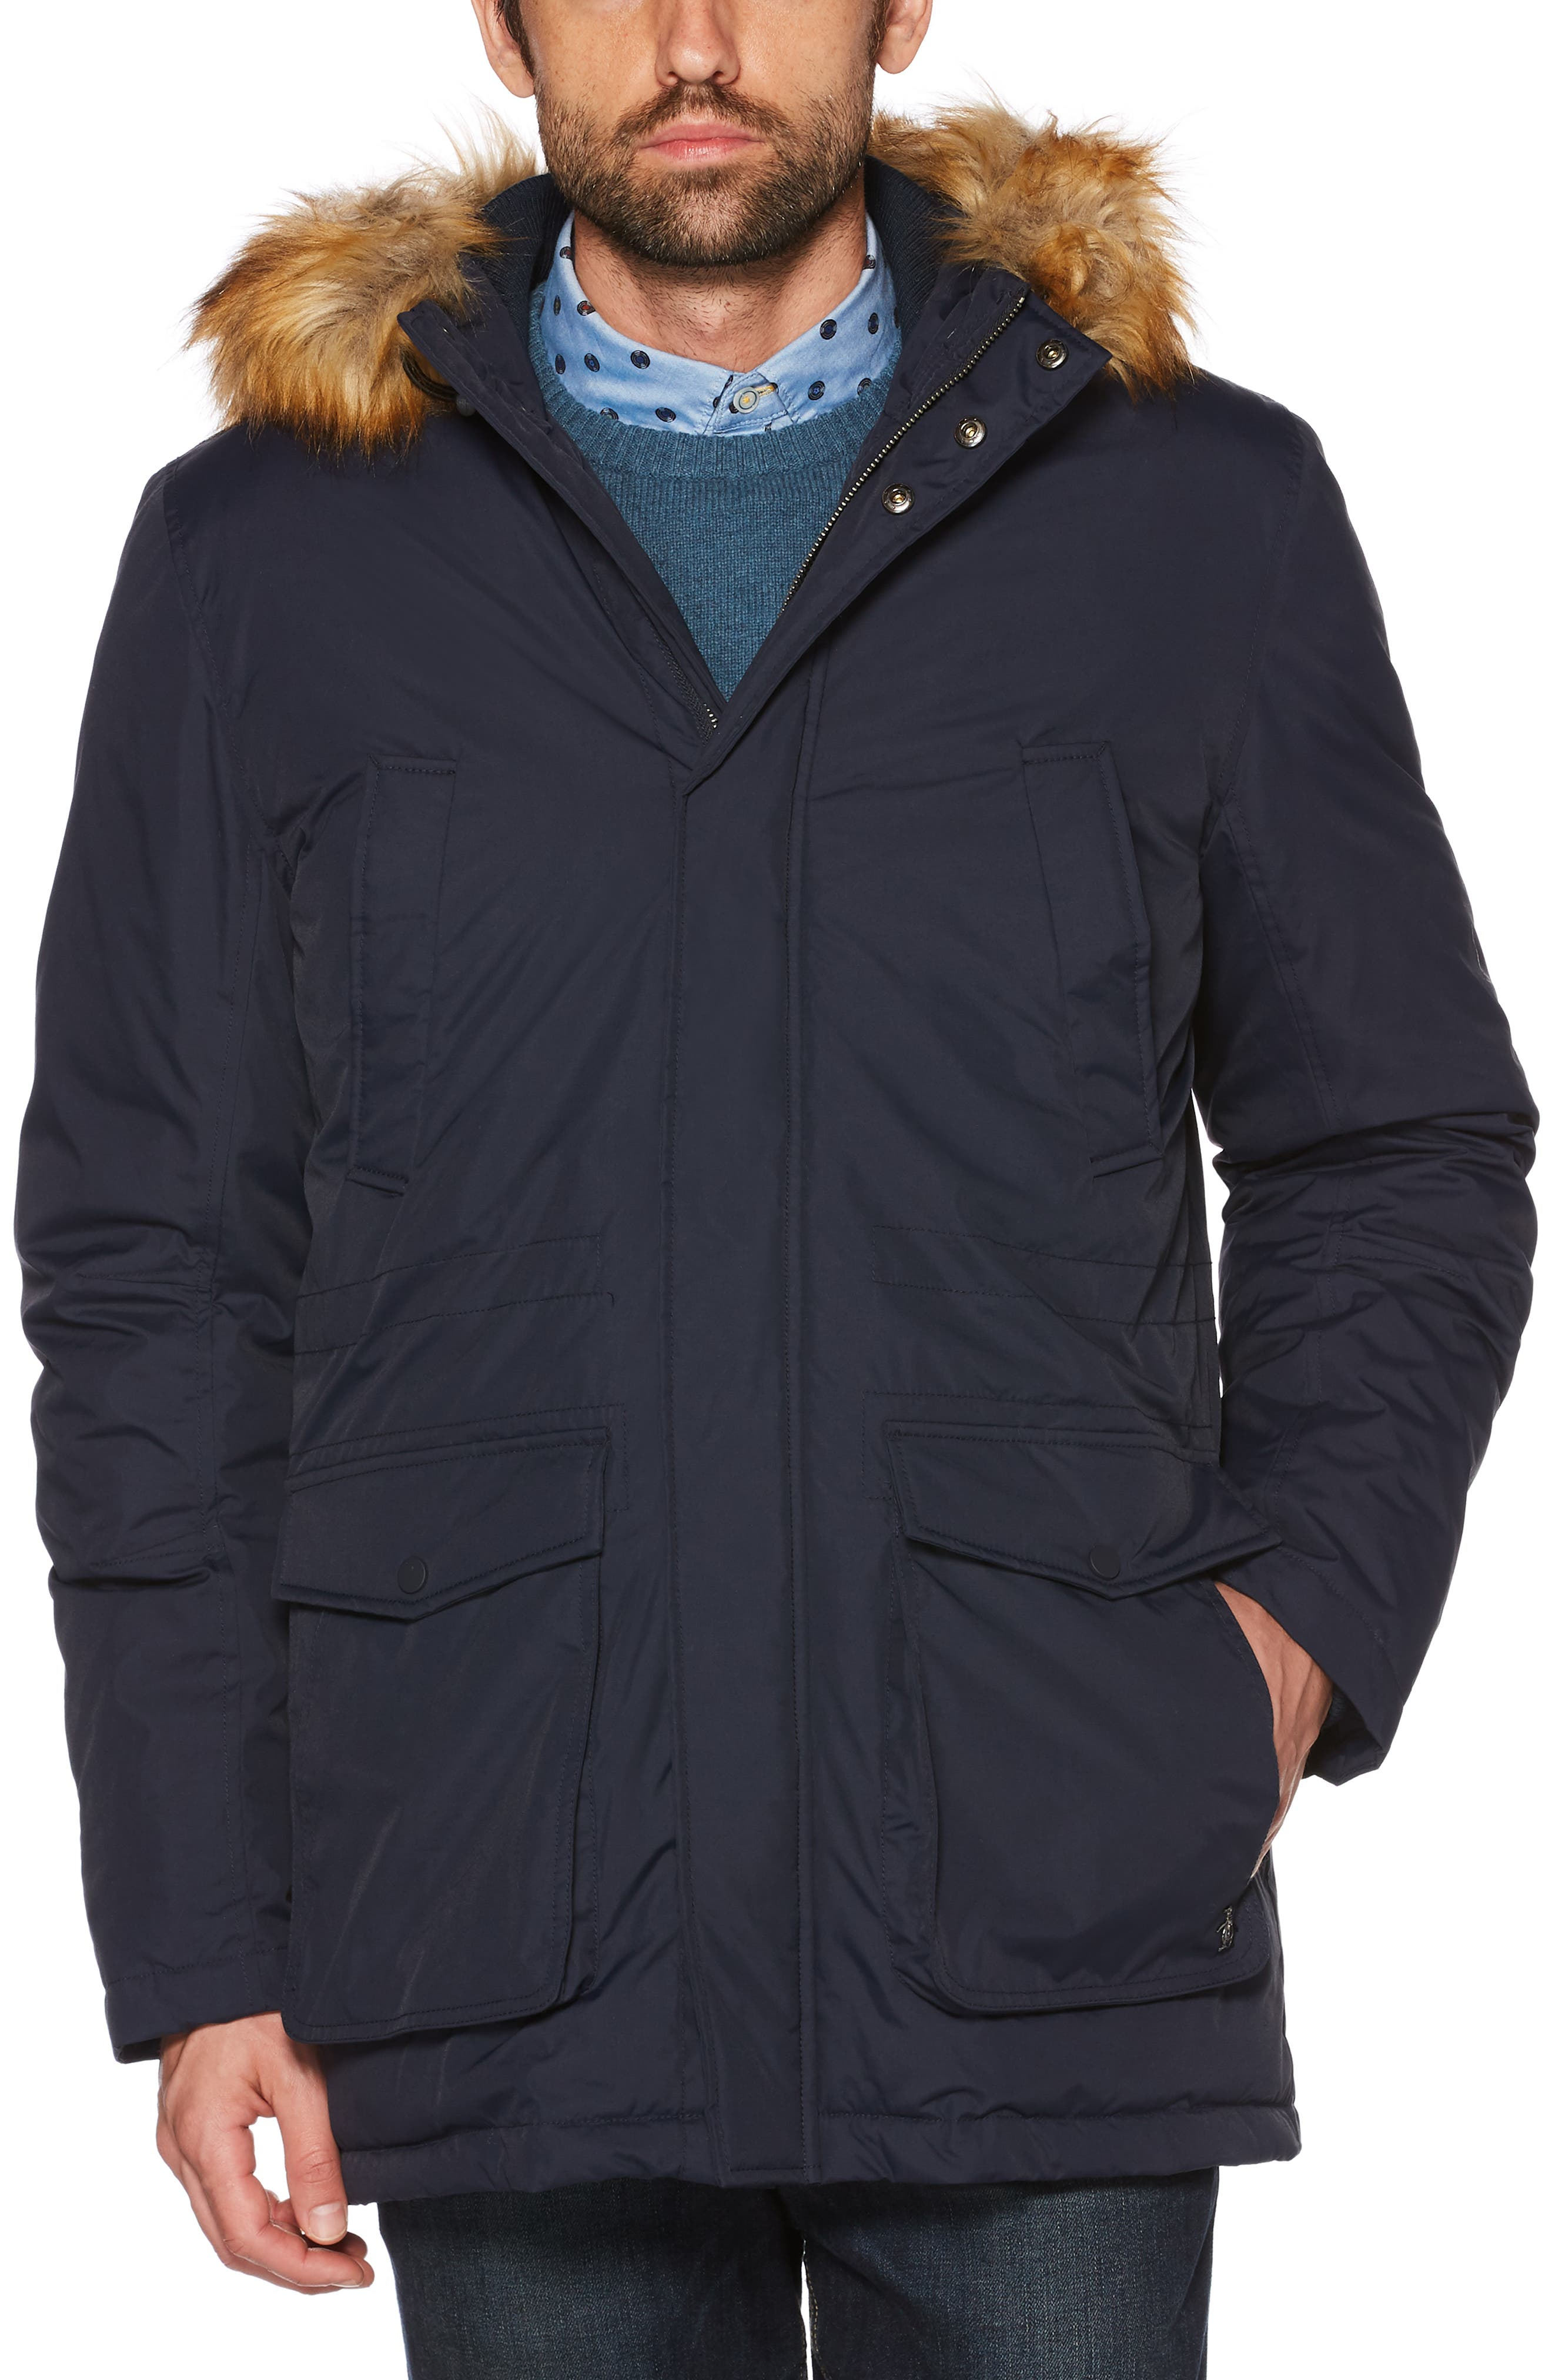 Insulated Parka with Faux Fur Trim,                             Main thumbnail 1, color,                             DARK SAPPHIRE